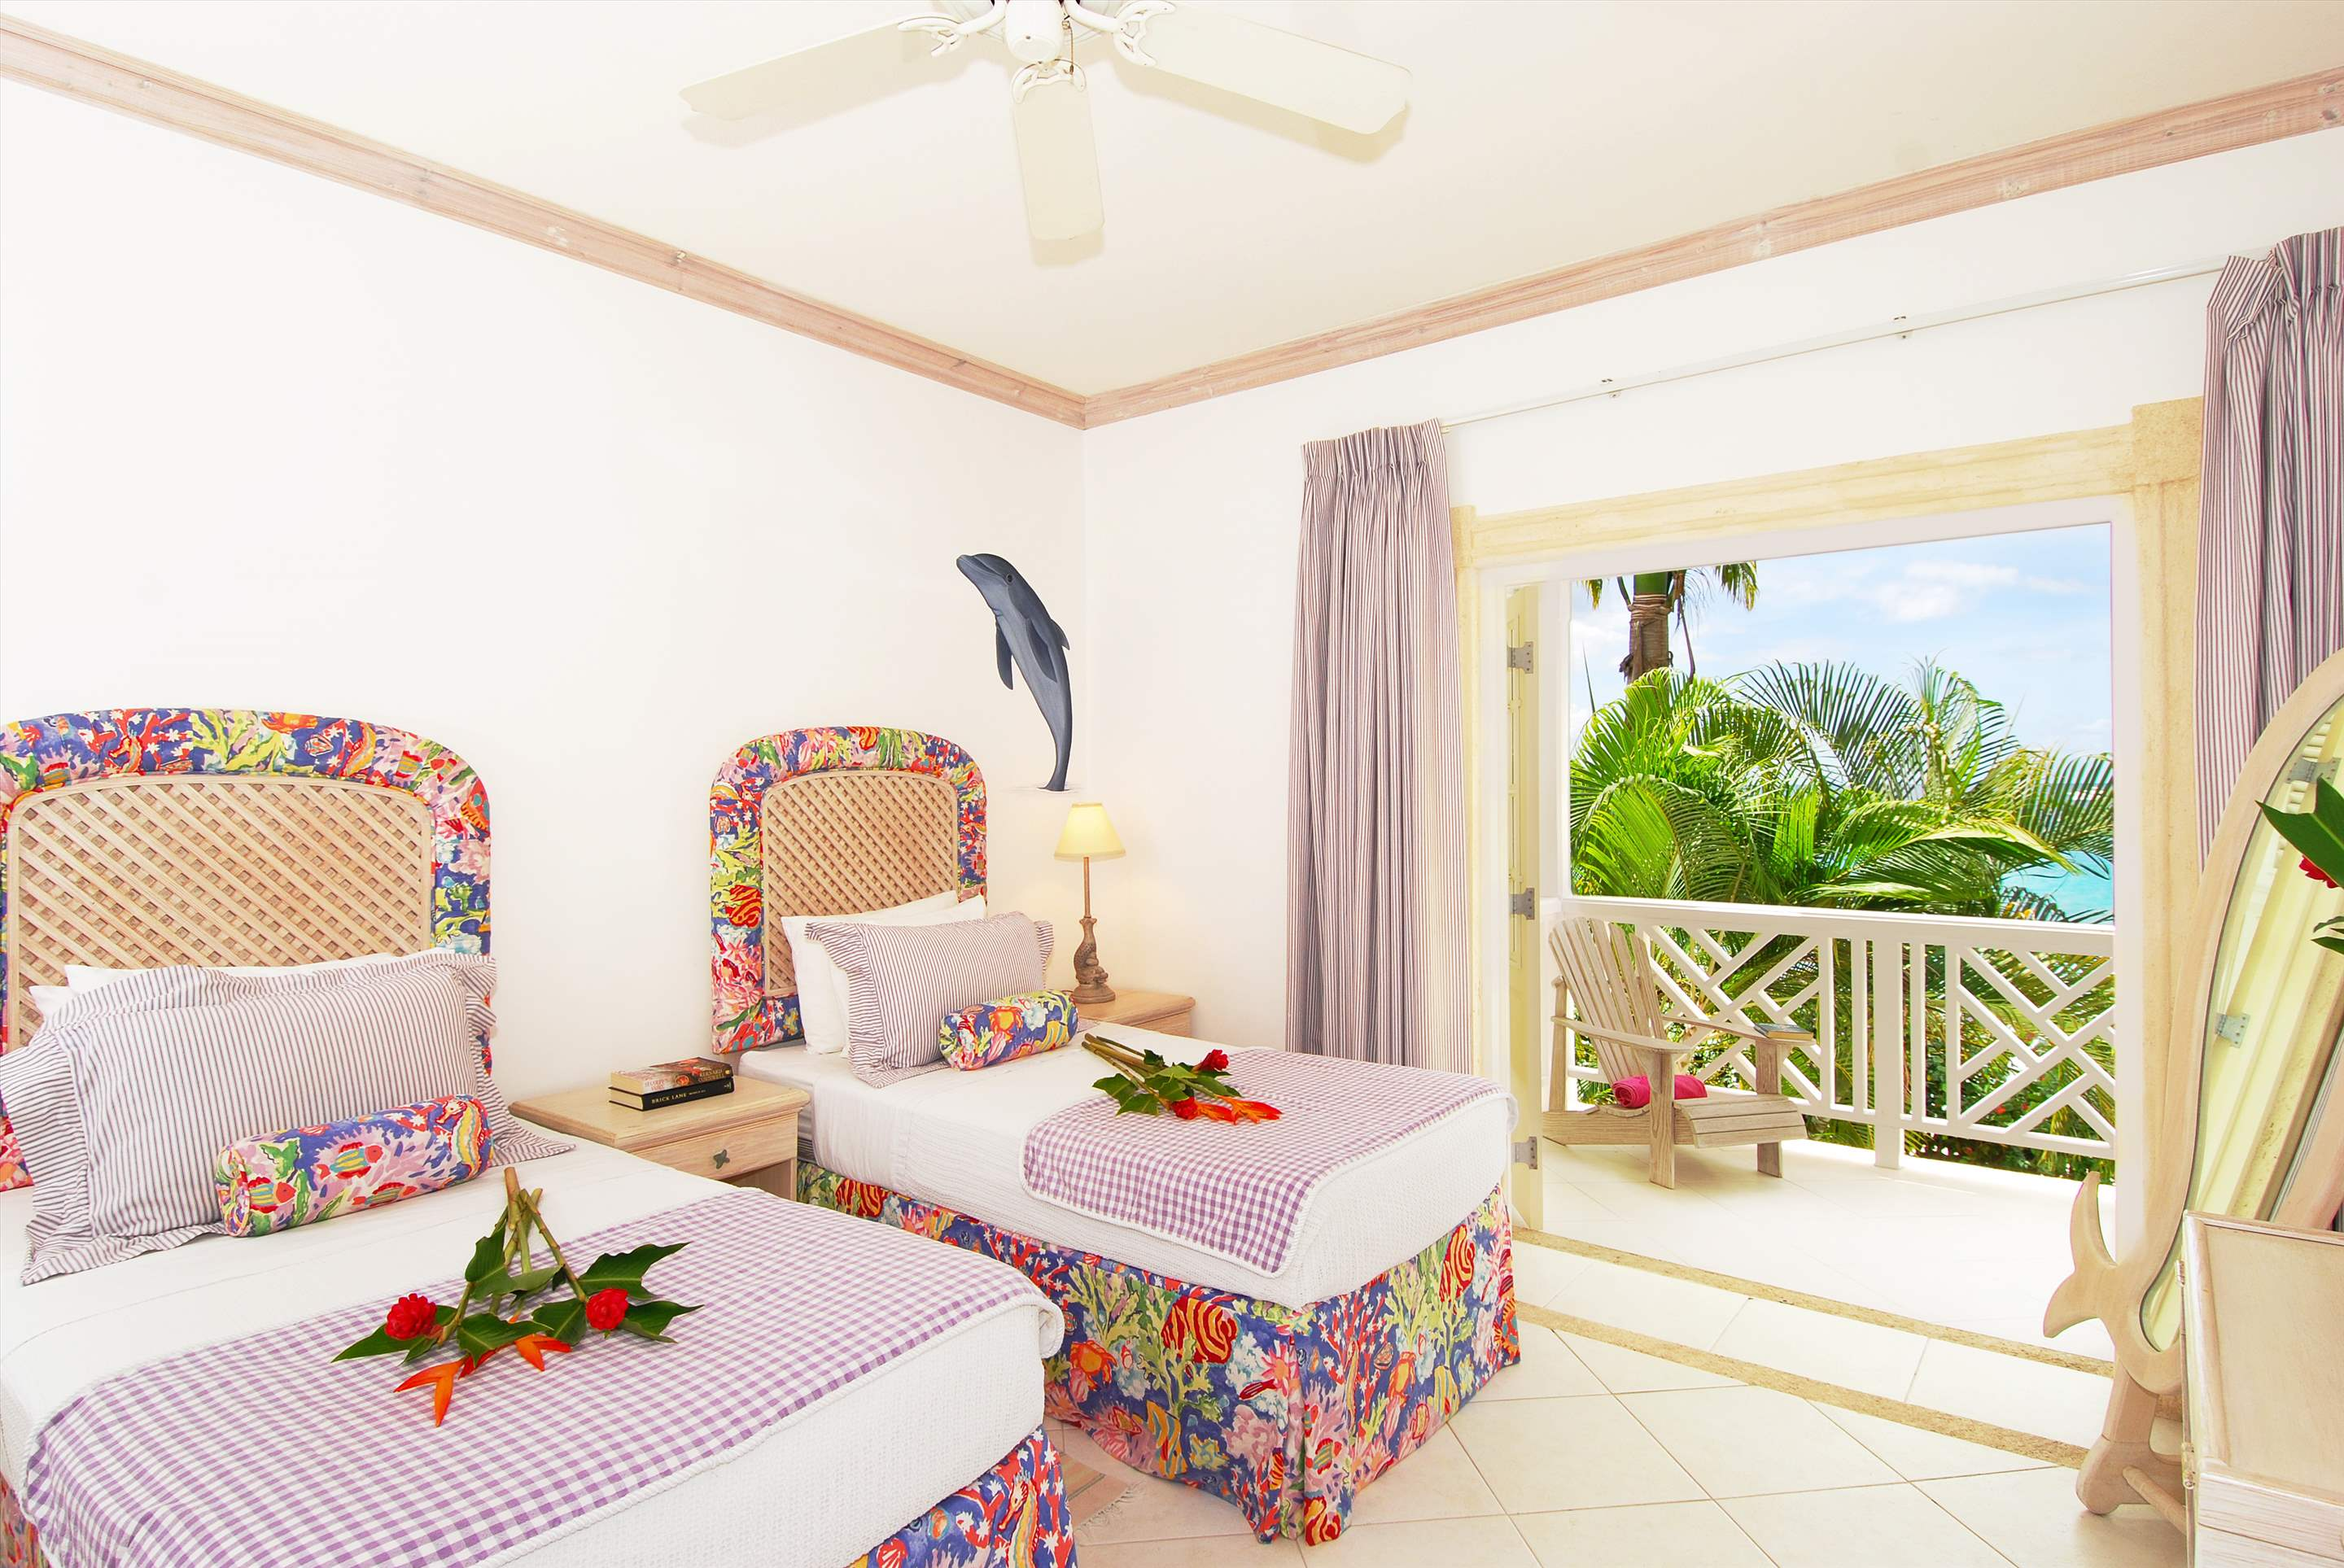 Fathom's End, 3 bedroom villa in St. James & West Coast, Barbados Photo #14